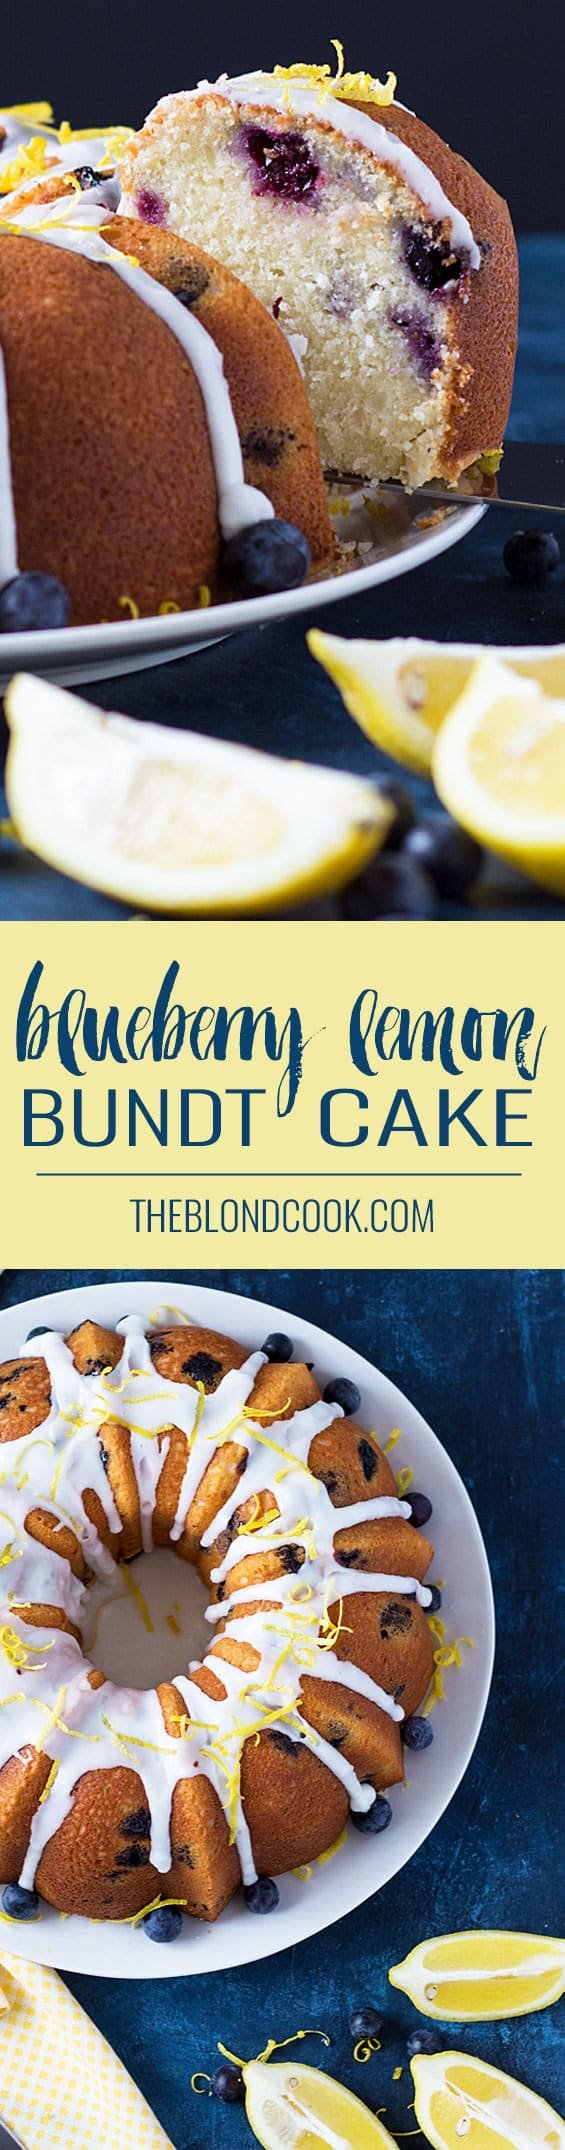 Blueberry Lemon Bundt Cake - A lemony, moist bundt cake full of fresh blueberries!